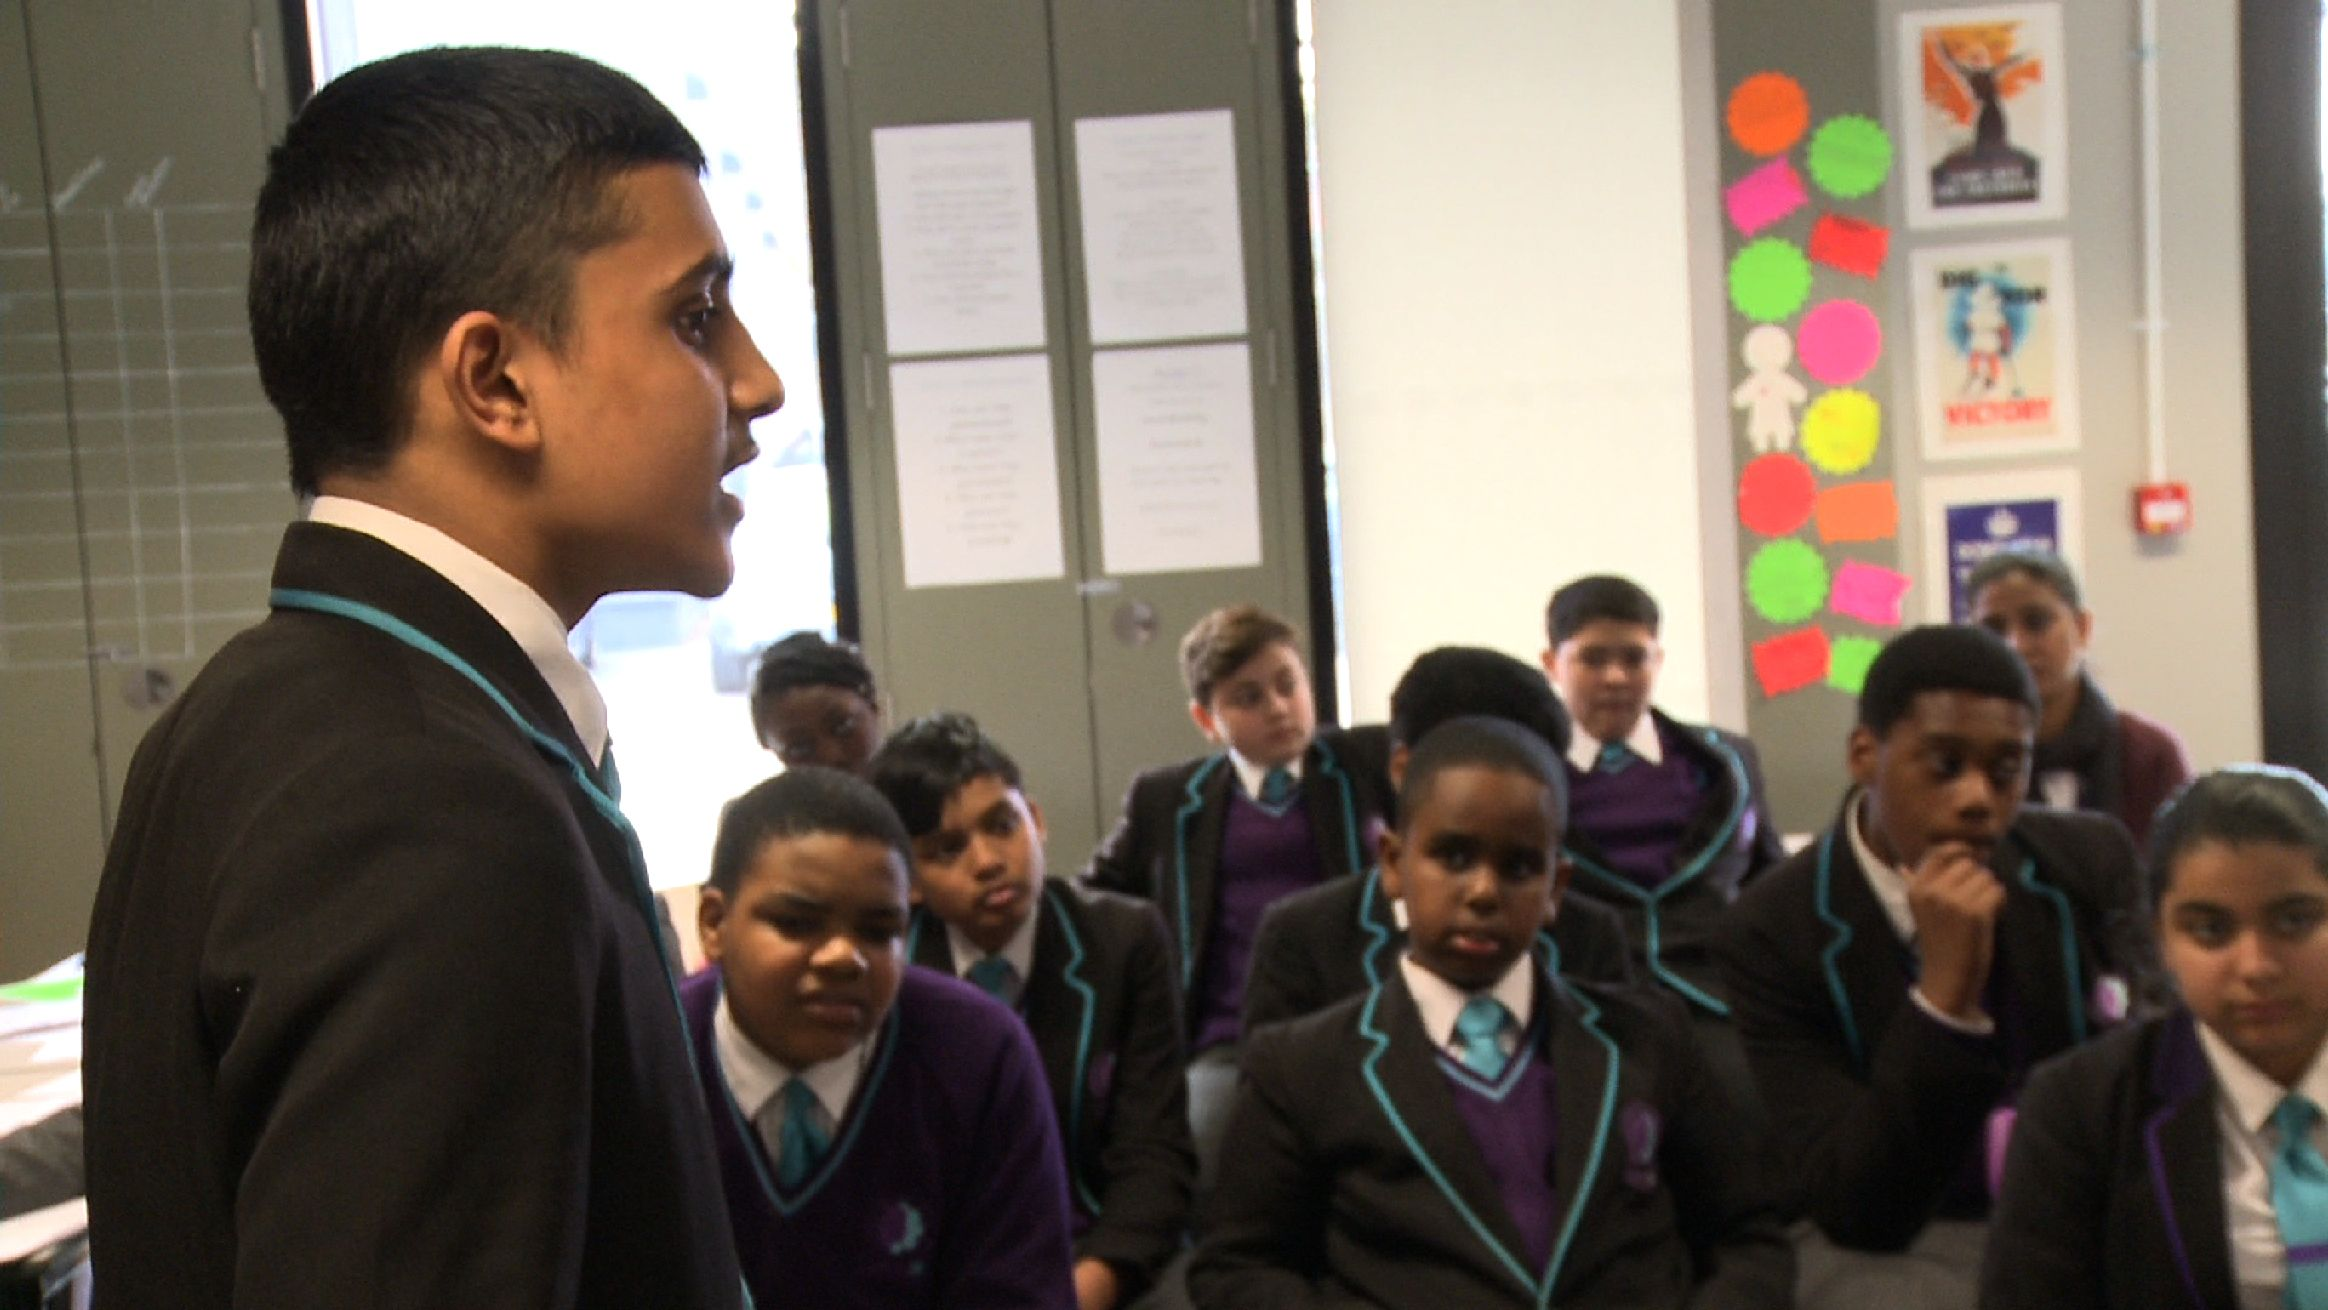 A student is speaking in front of the classroom.